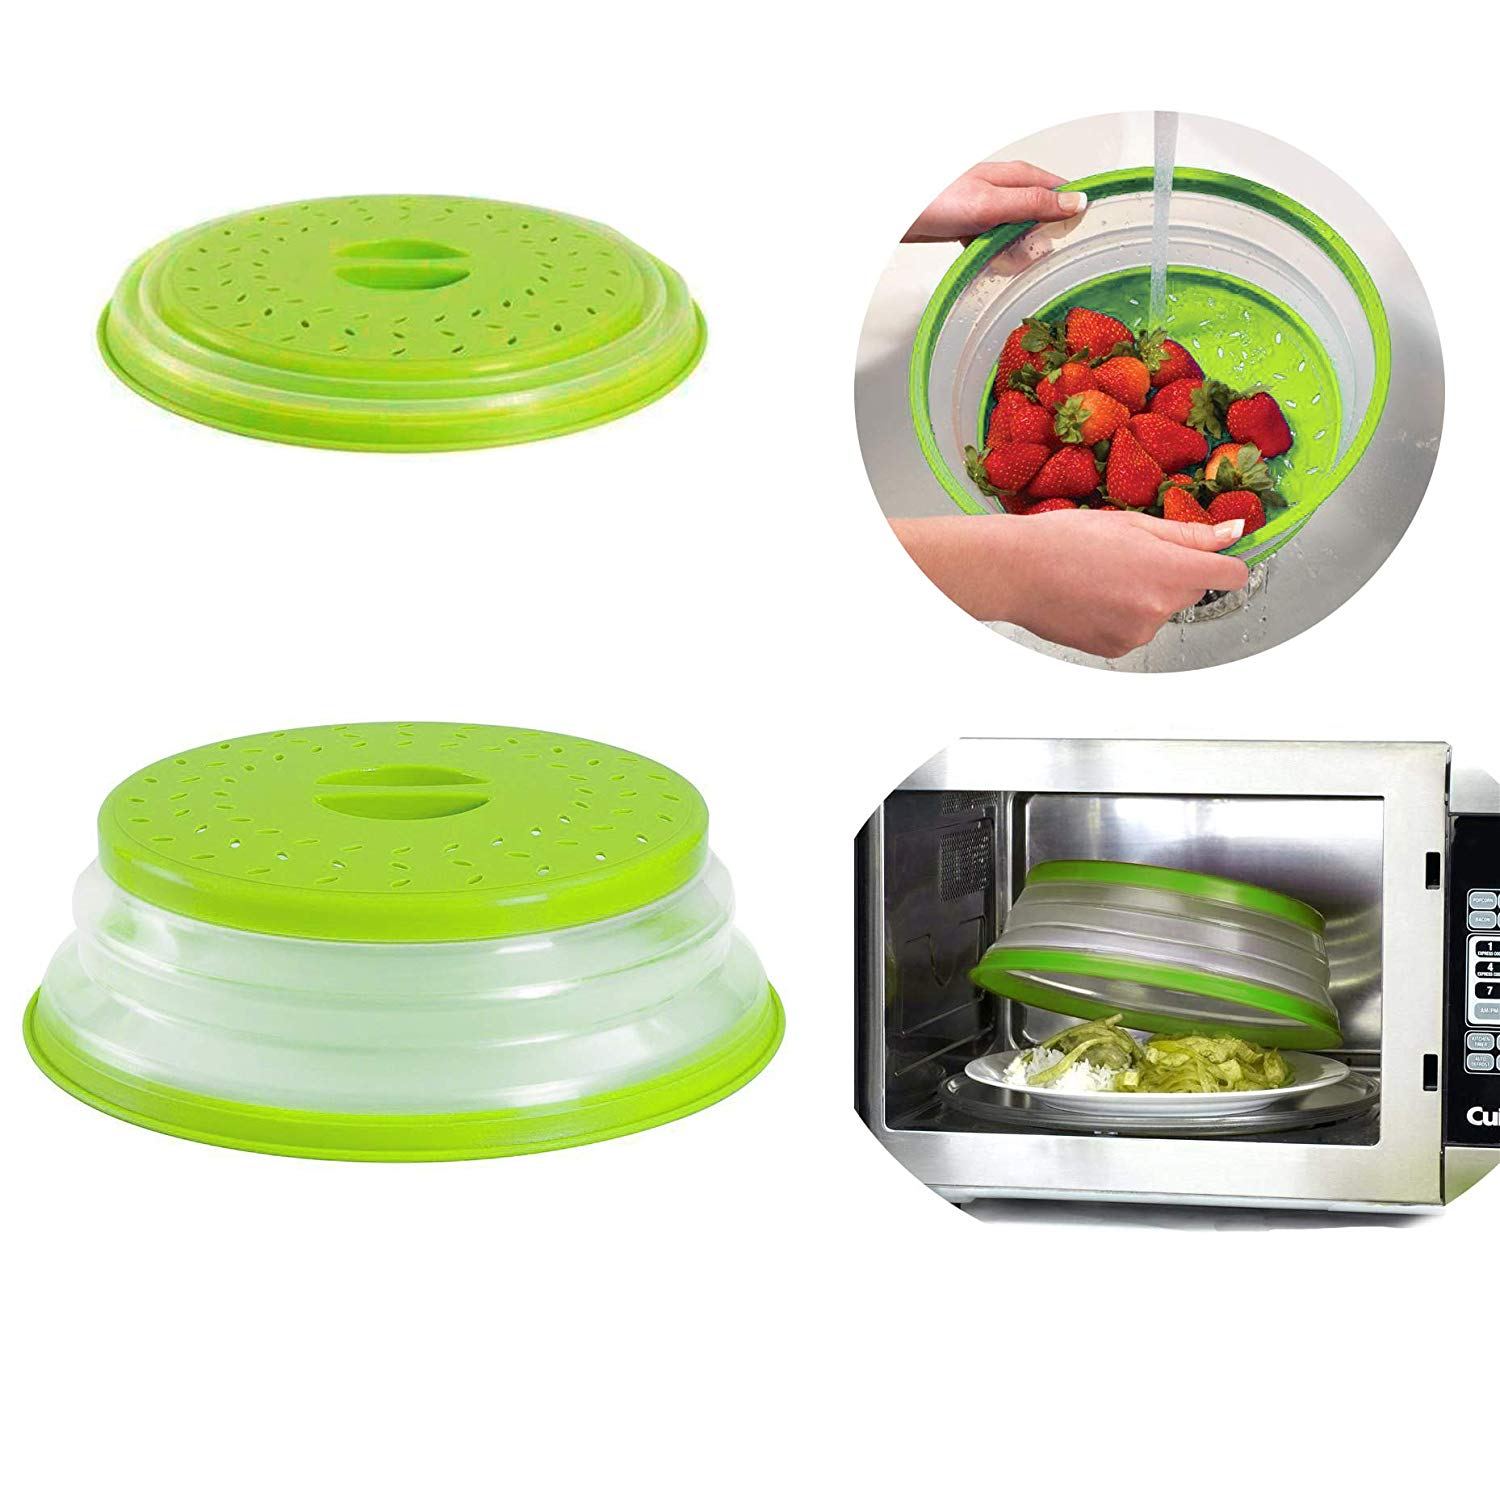 Collapsible Microwave Food Cover, Plastic Microwave Plate Cover Splatter, Colander Strainer for Fruit Vegetables